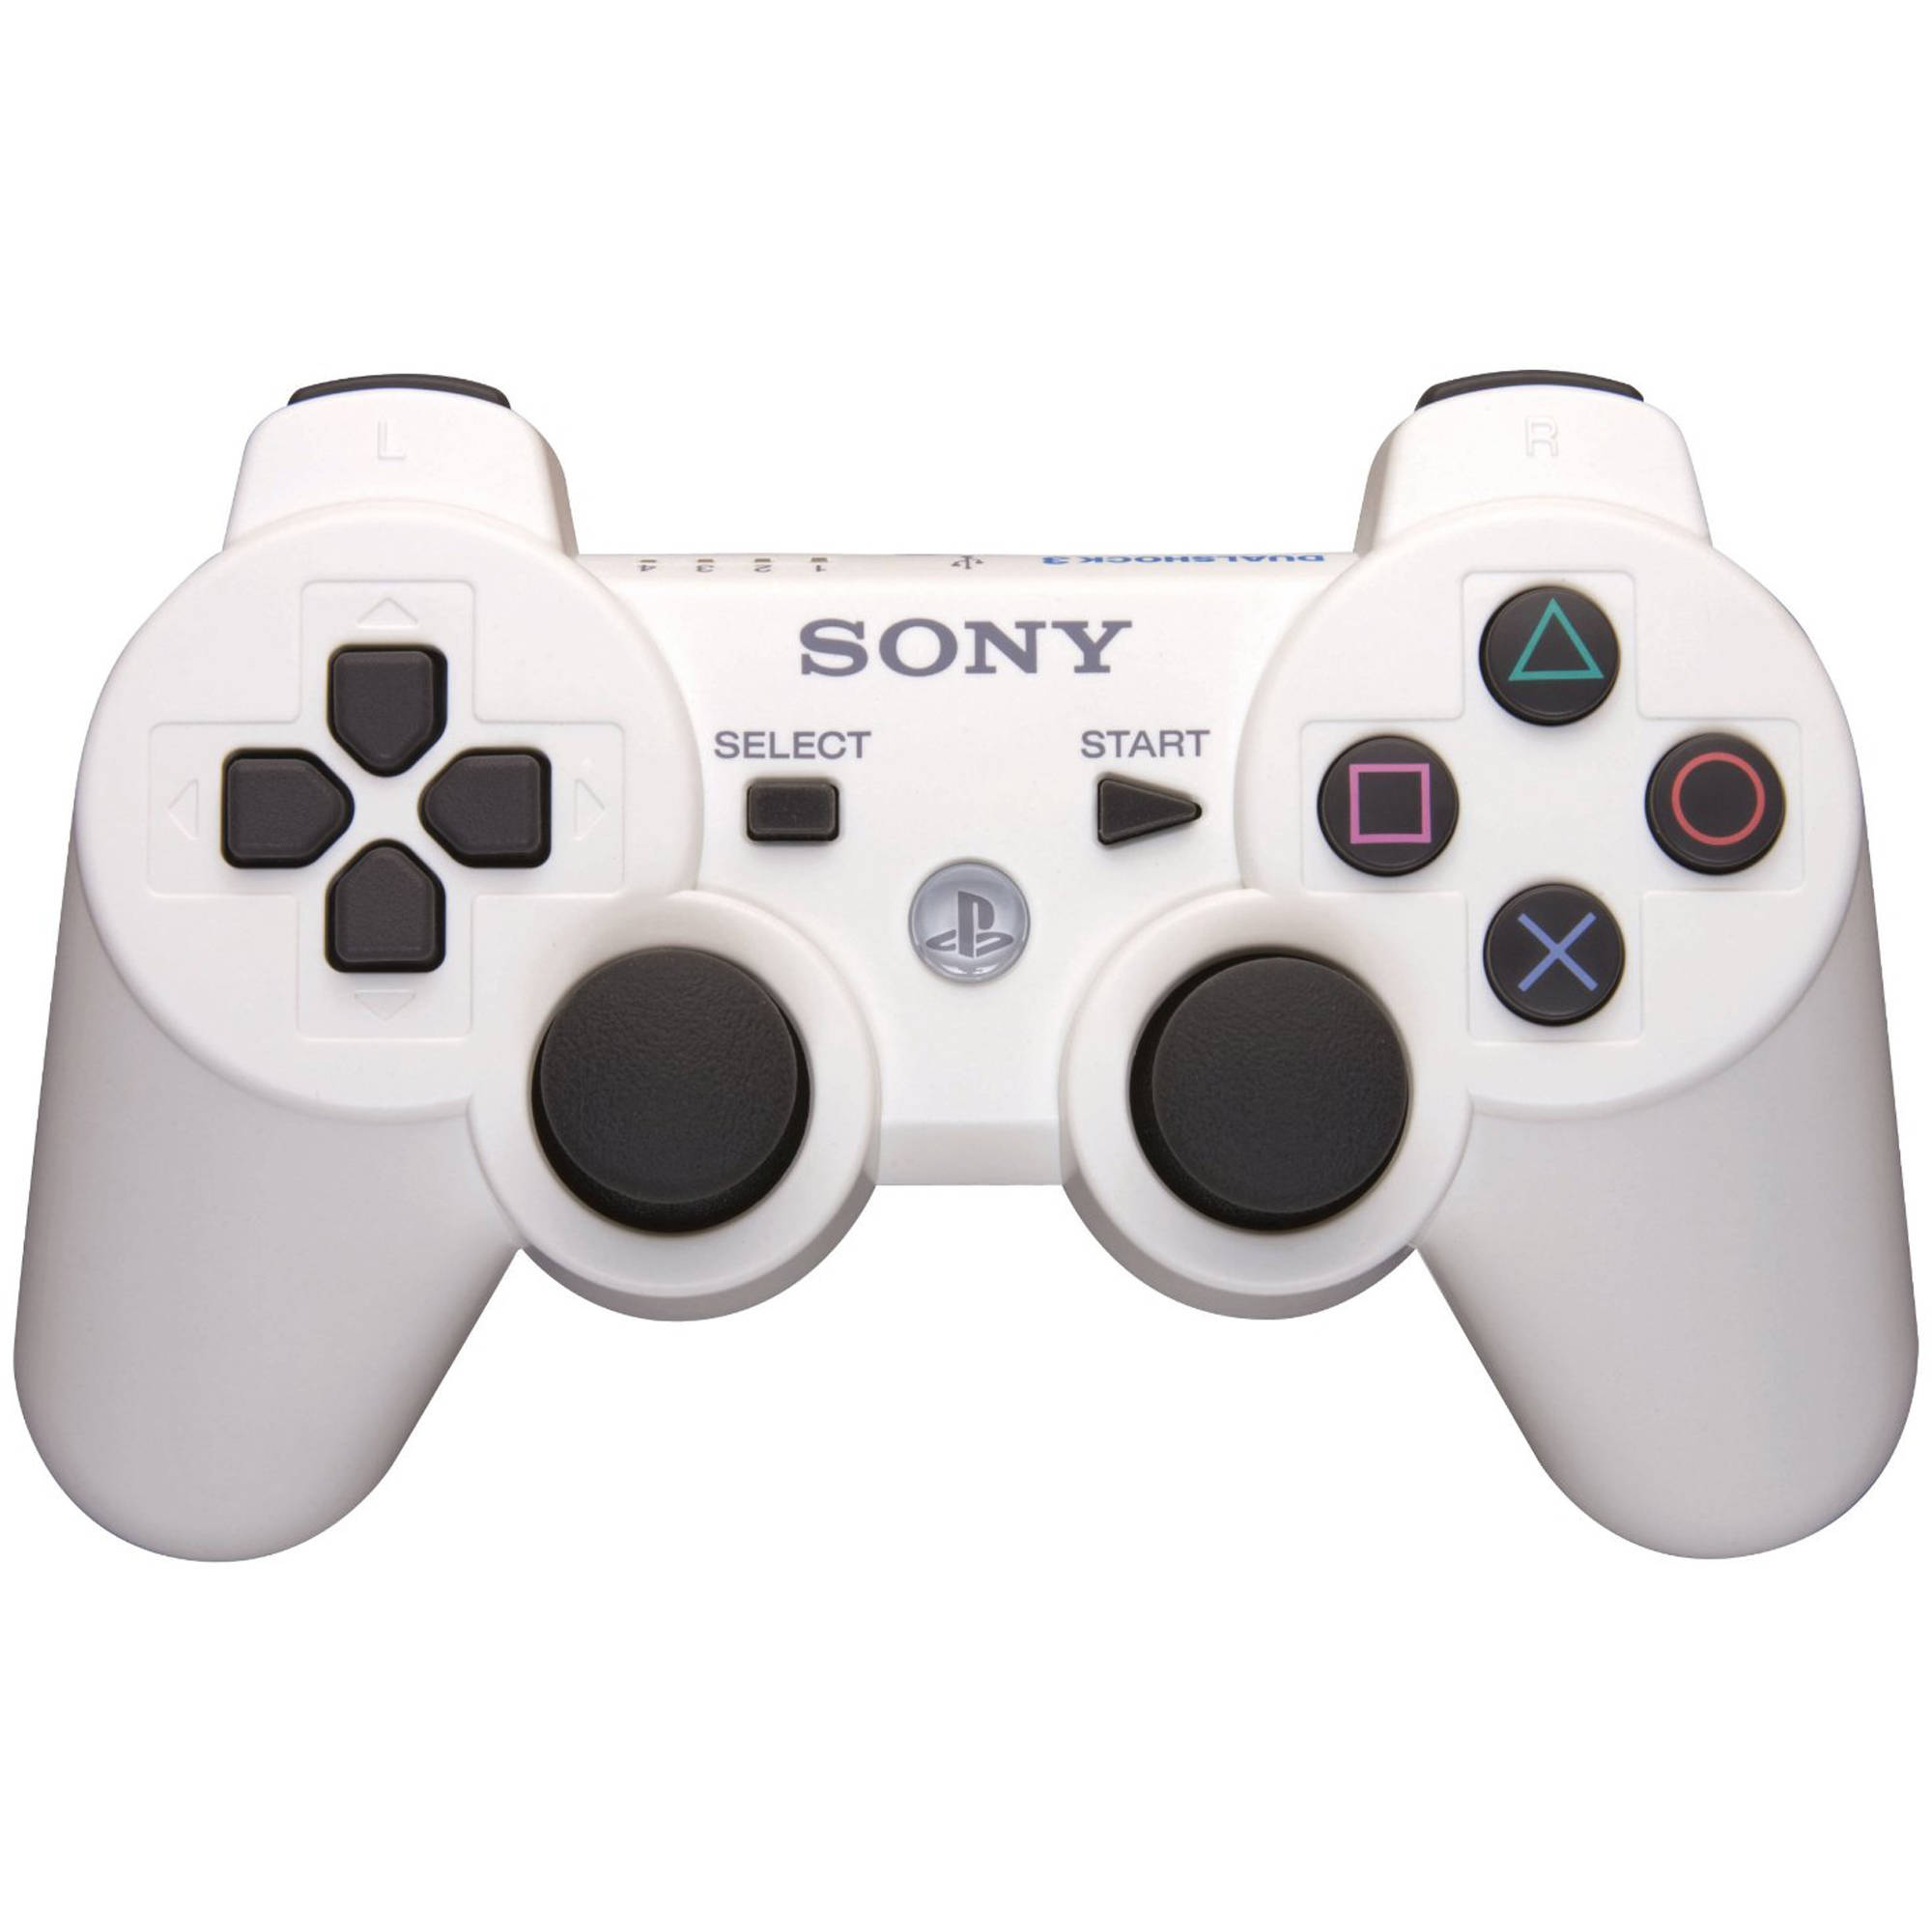 Usb Cable For Ps3 Controller Walmart: Sony Dual Shock 3 - Classic White (PS3) - Walmart.comrh:walmart.com,Design